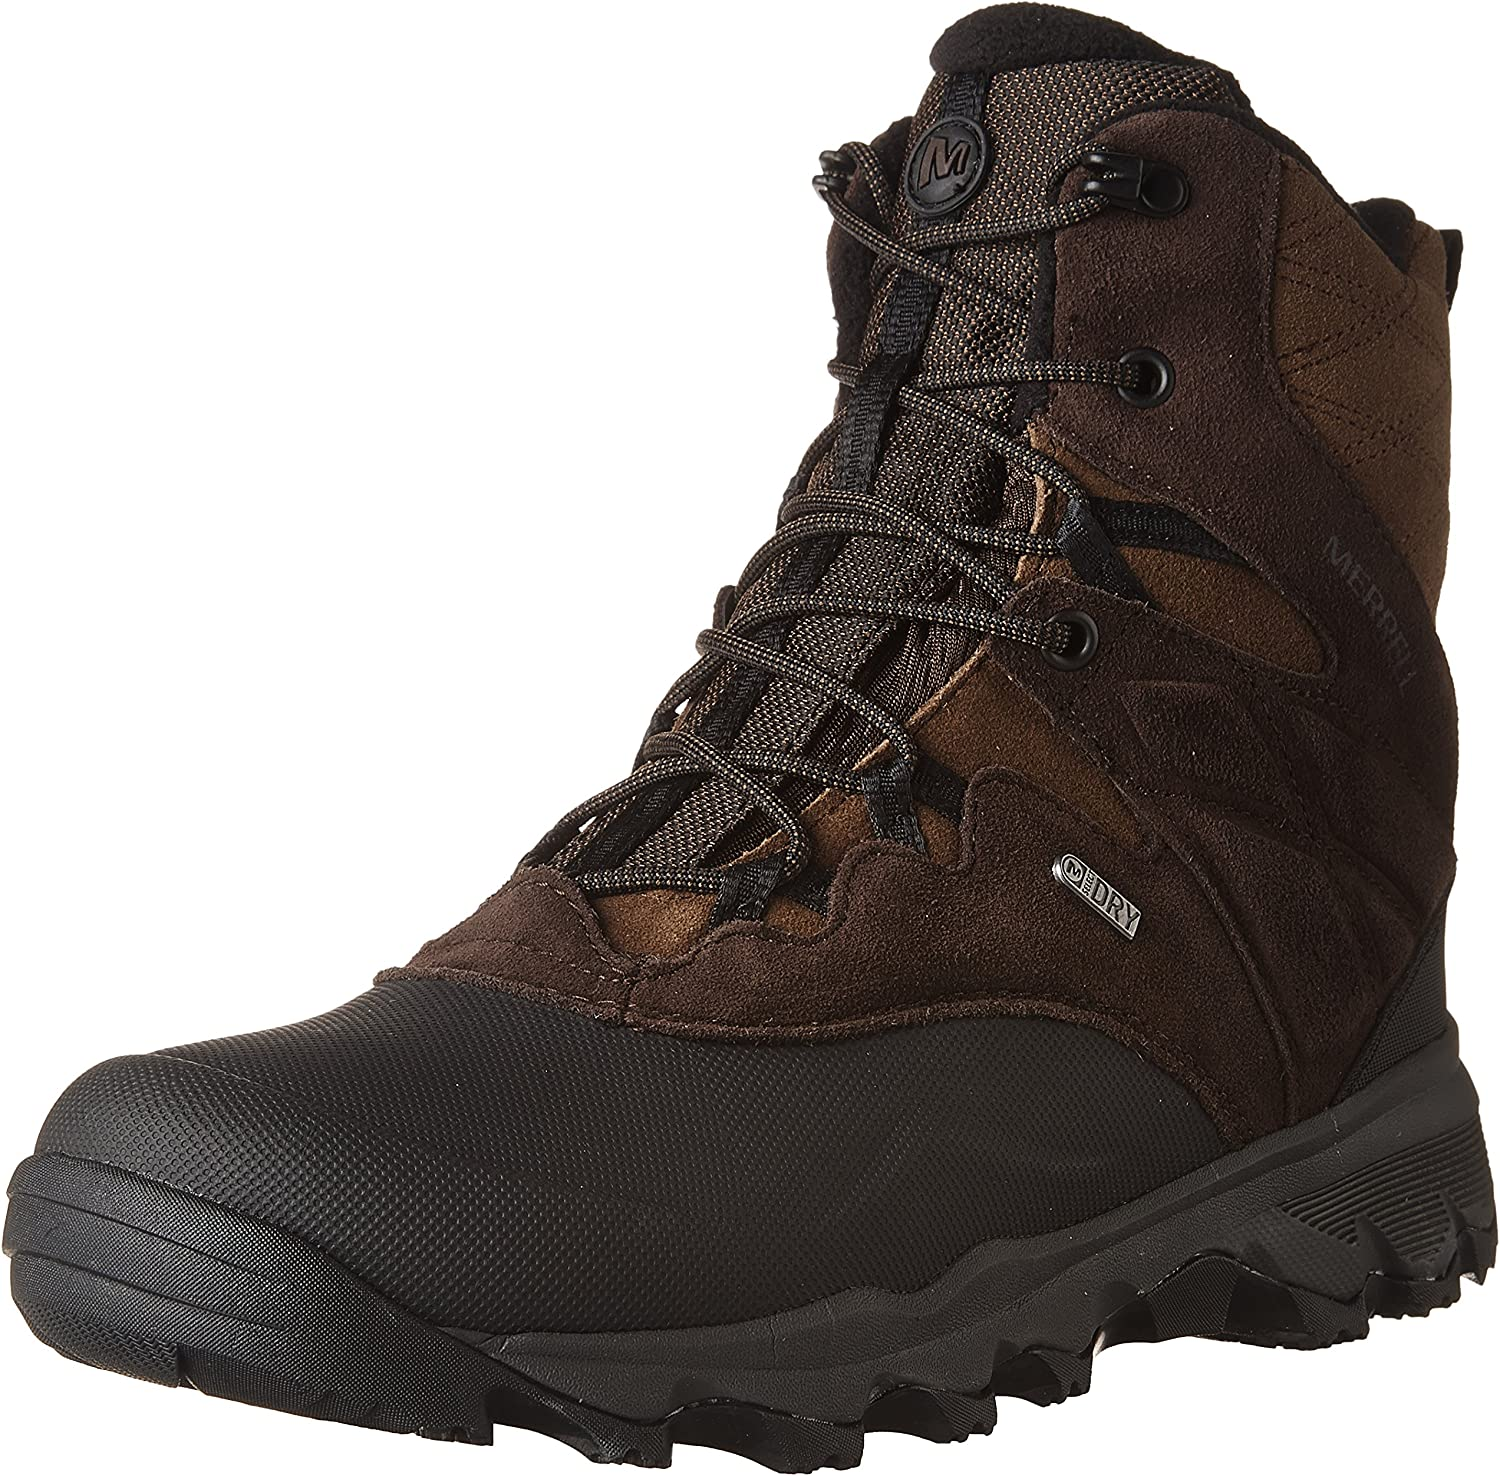 Merrell Thermo Shiver 8 Mens Waterproof Hiking Mid Ankle Boots